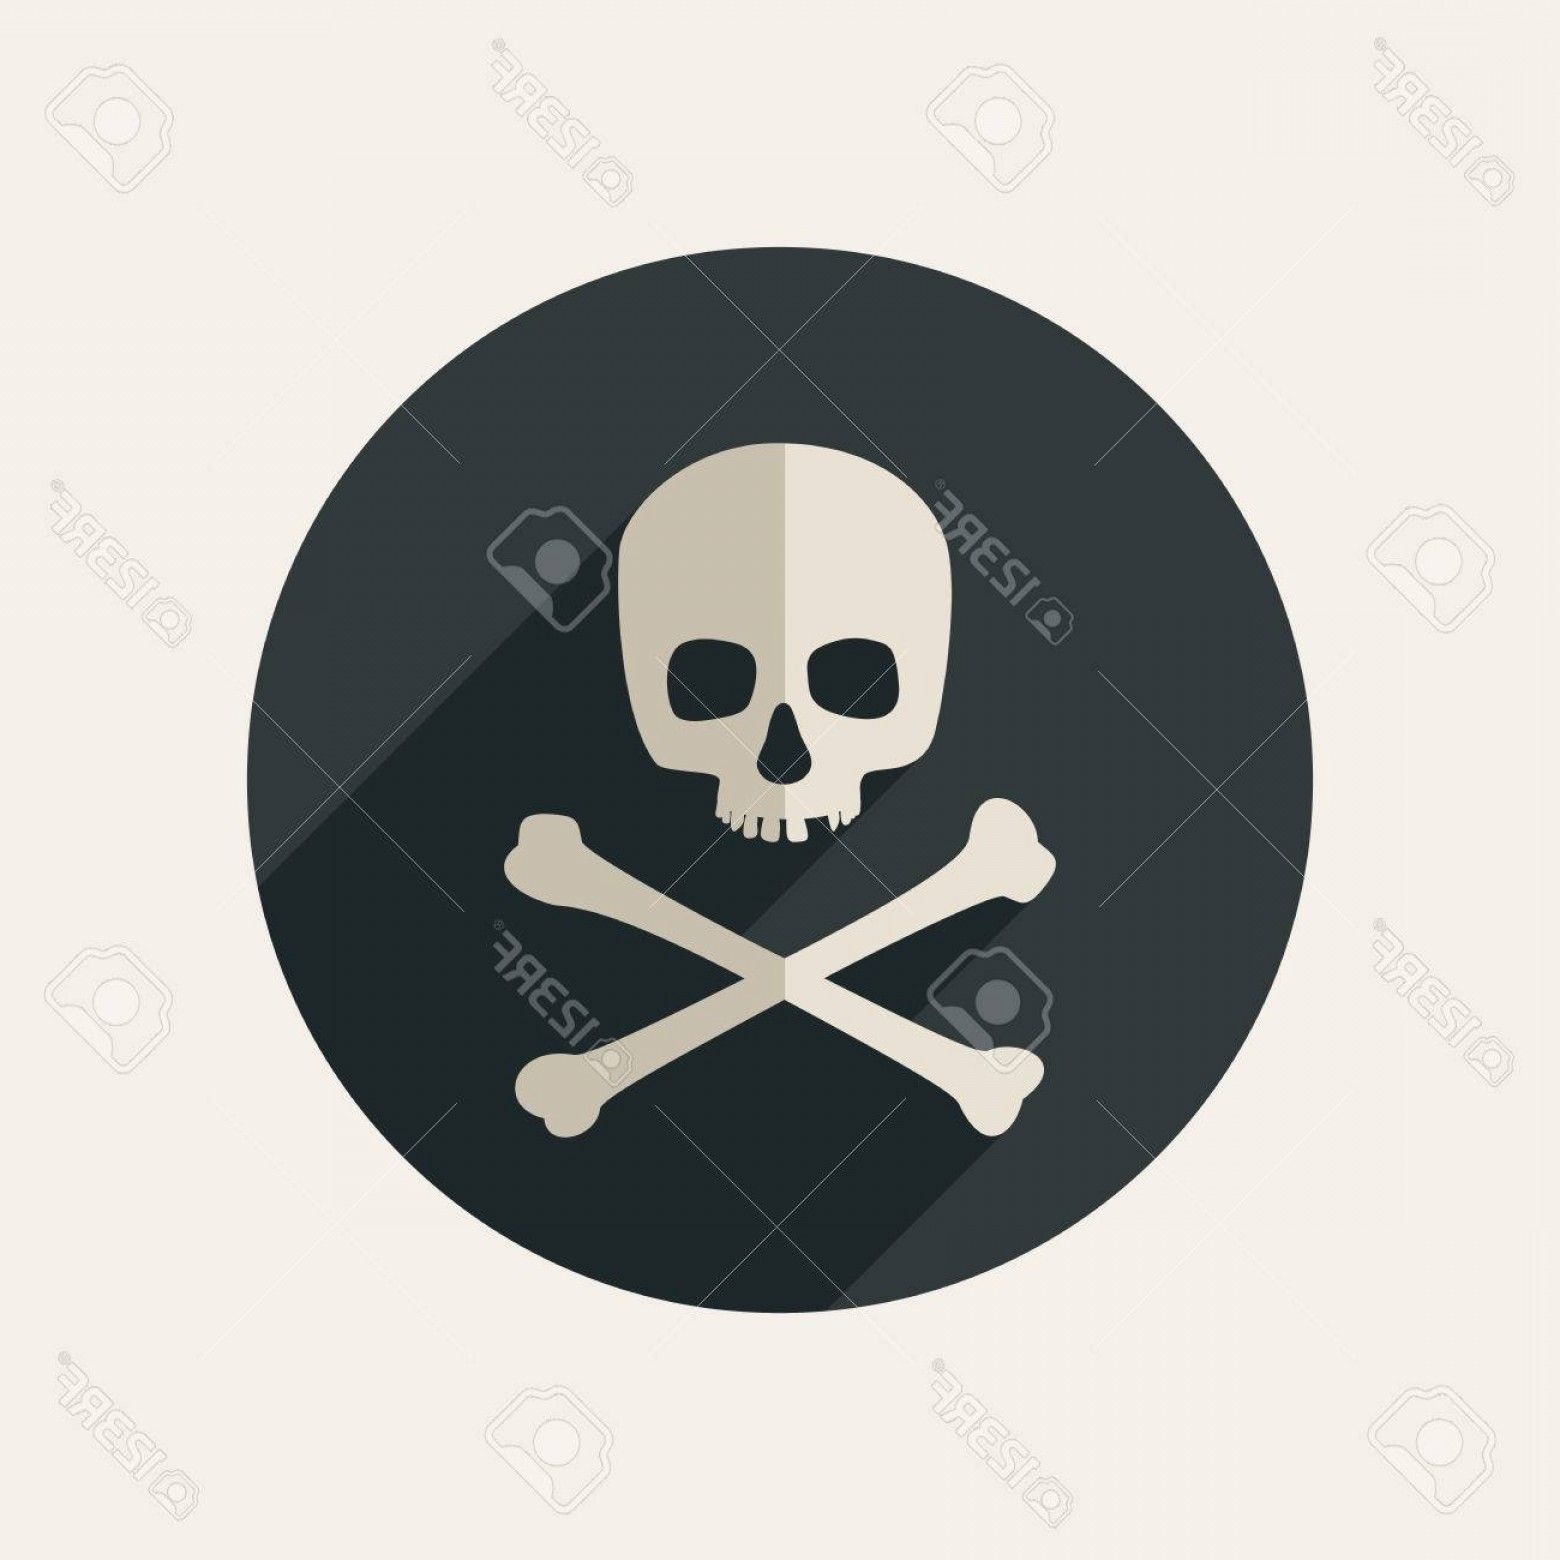 Skull ND Crossbones Vector: Photostock Vector Skull And Crossbones Icon On Round Dark Background Vector Flat Illustration